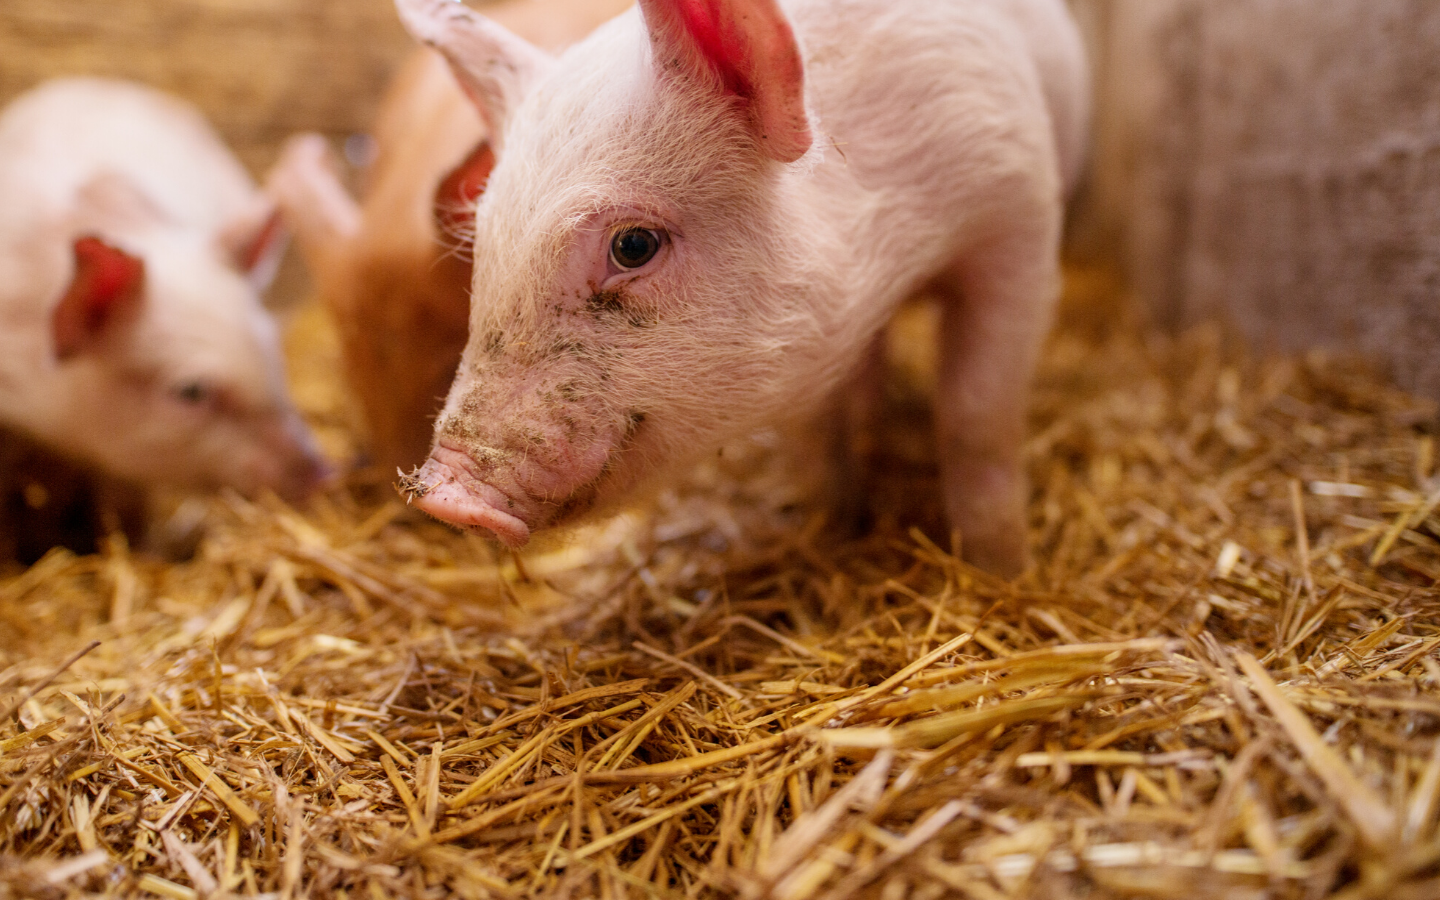 Do soy isoflavones help fight against PRRSV infection in weaning pigs & does soy source matter?